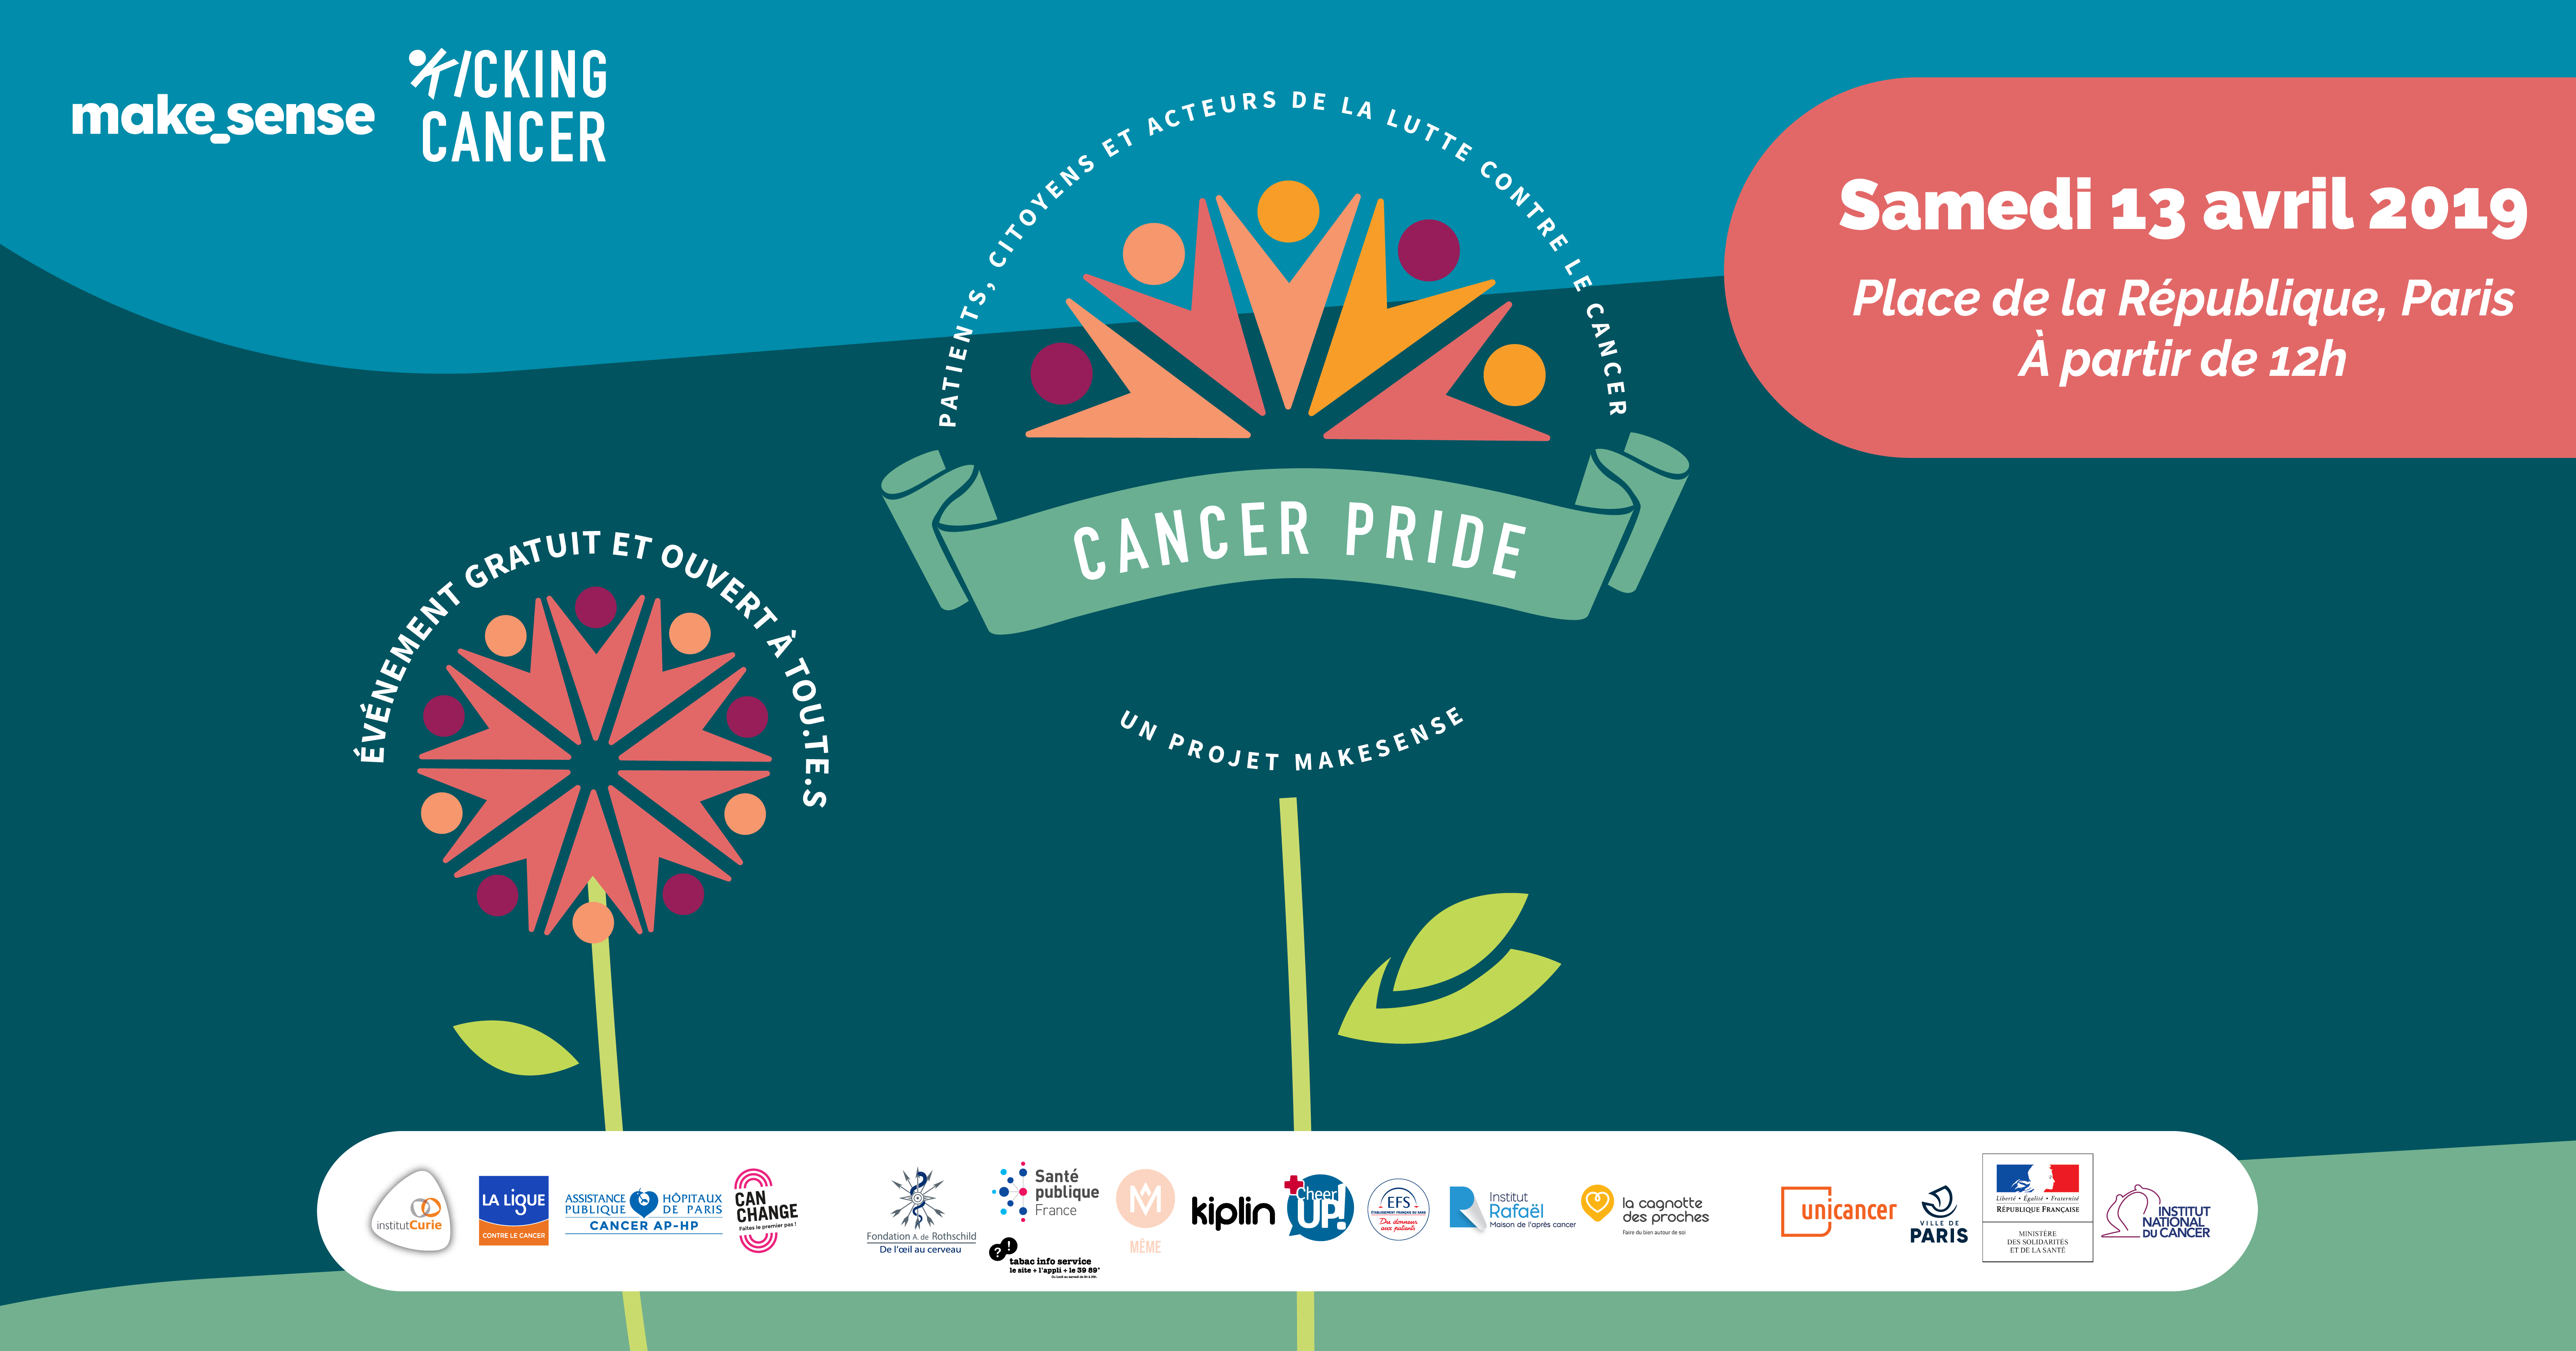 Image of the event : Cancer Pride